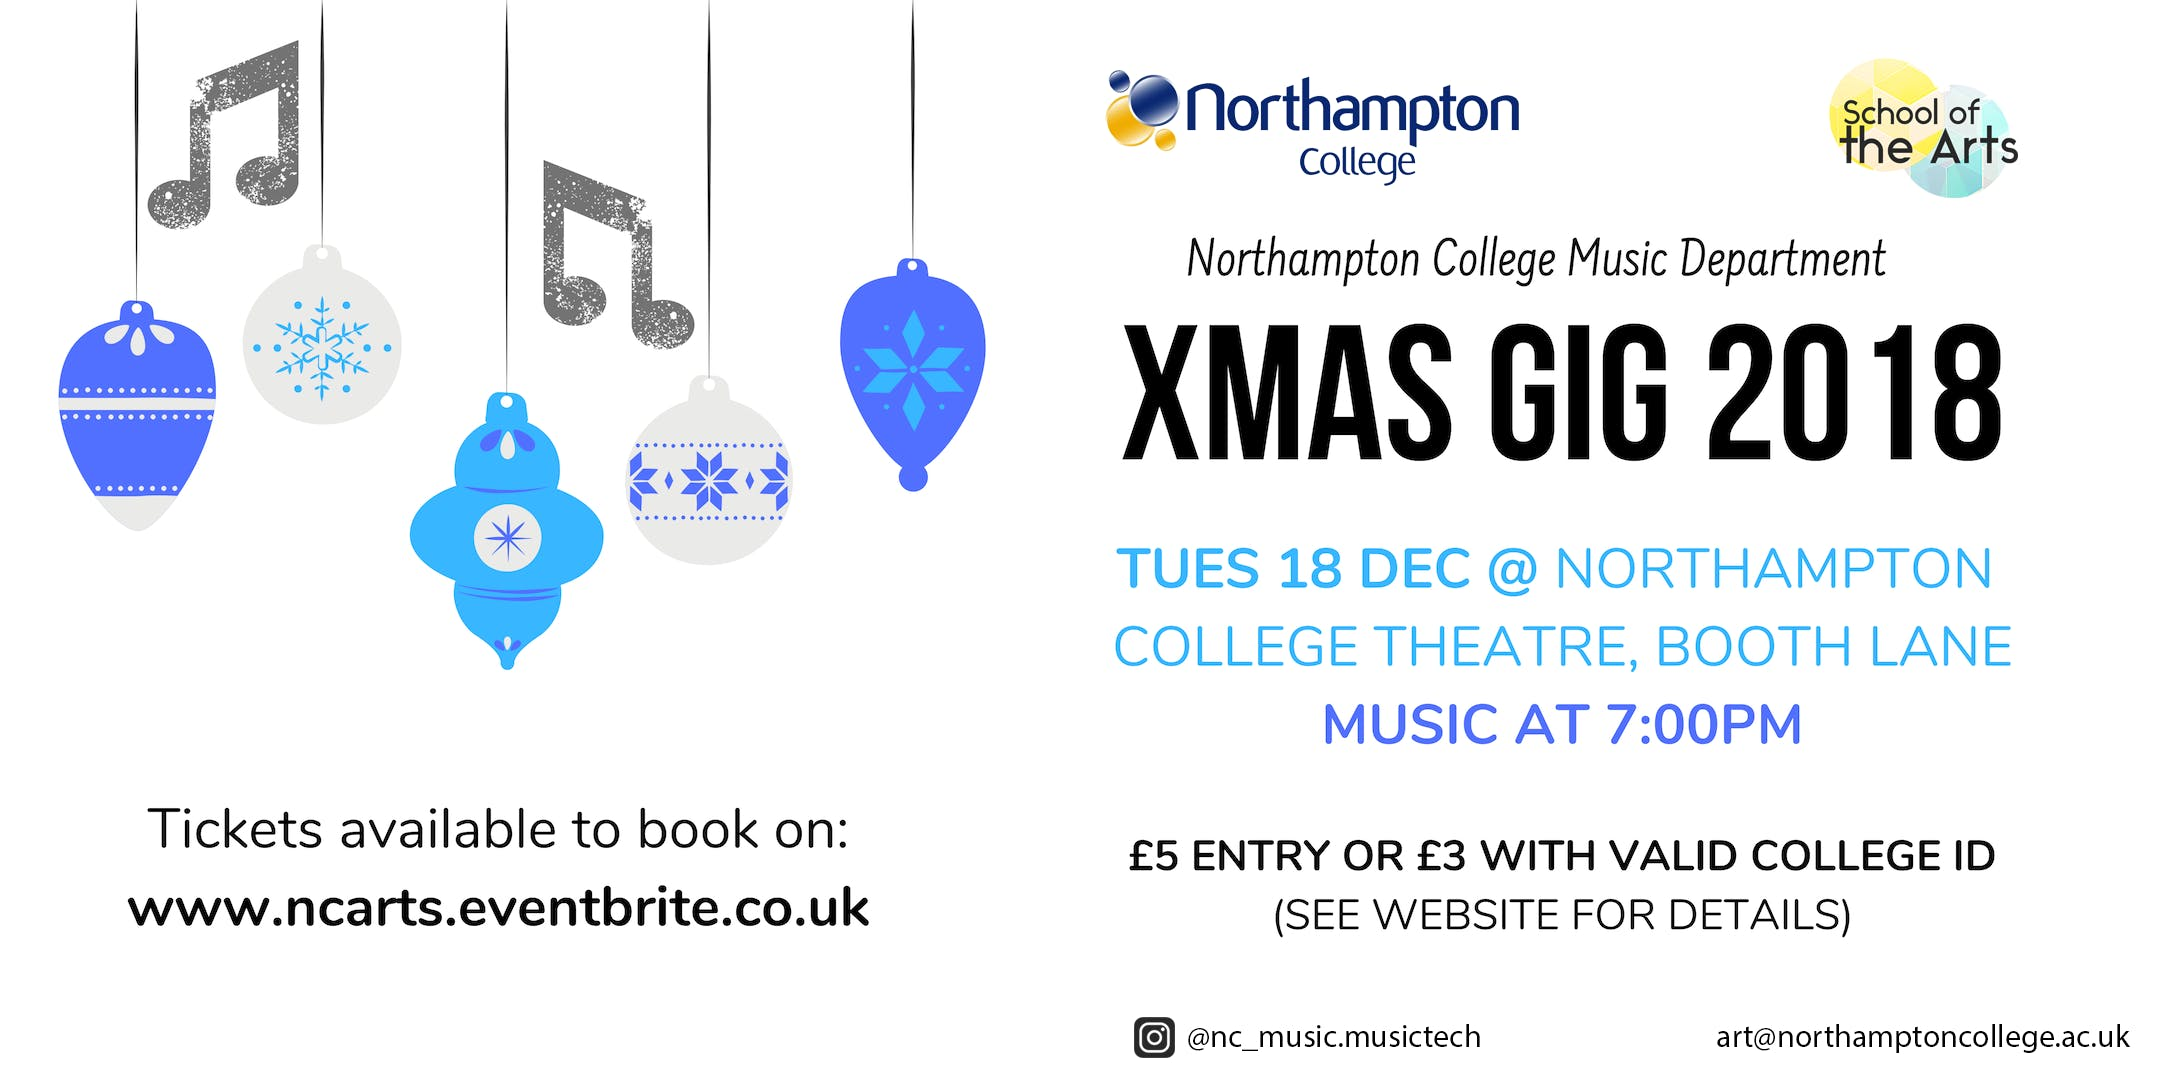 Northampton College XMAS Music Gig 2018